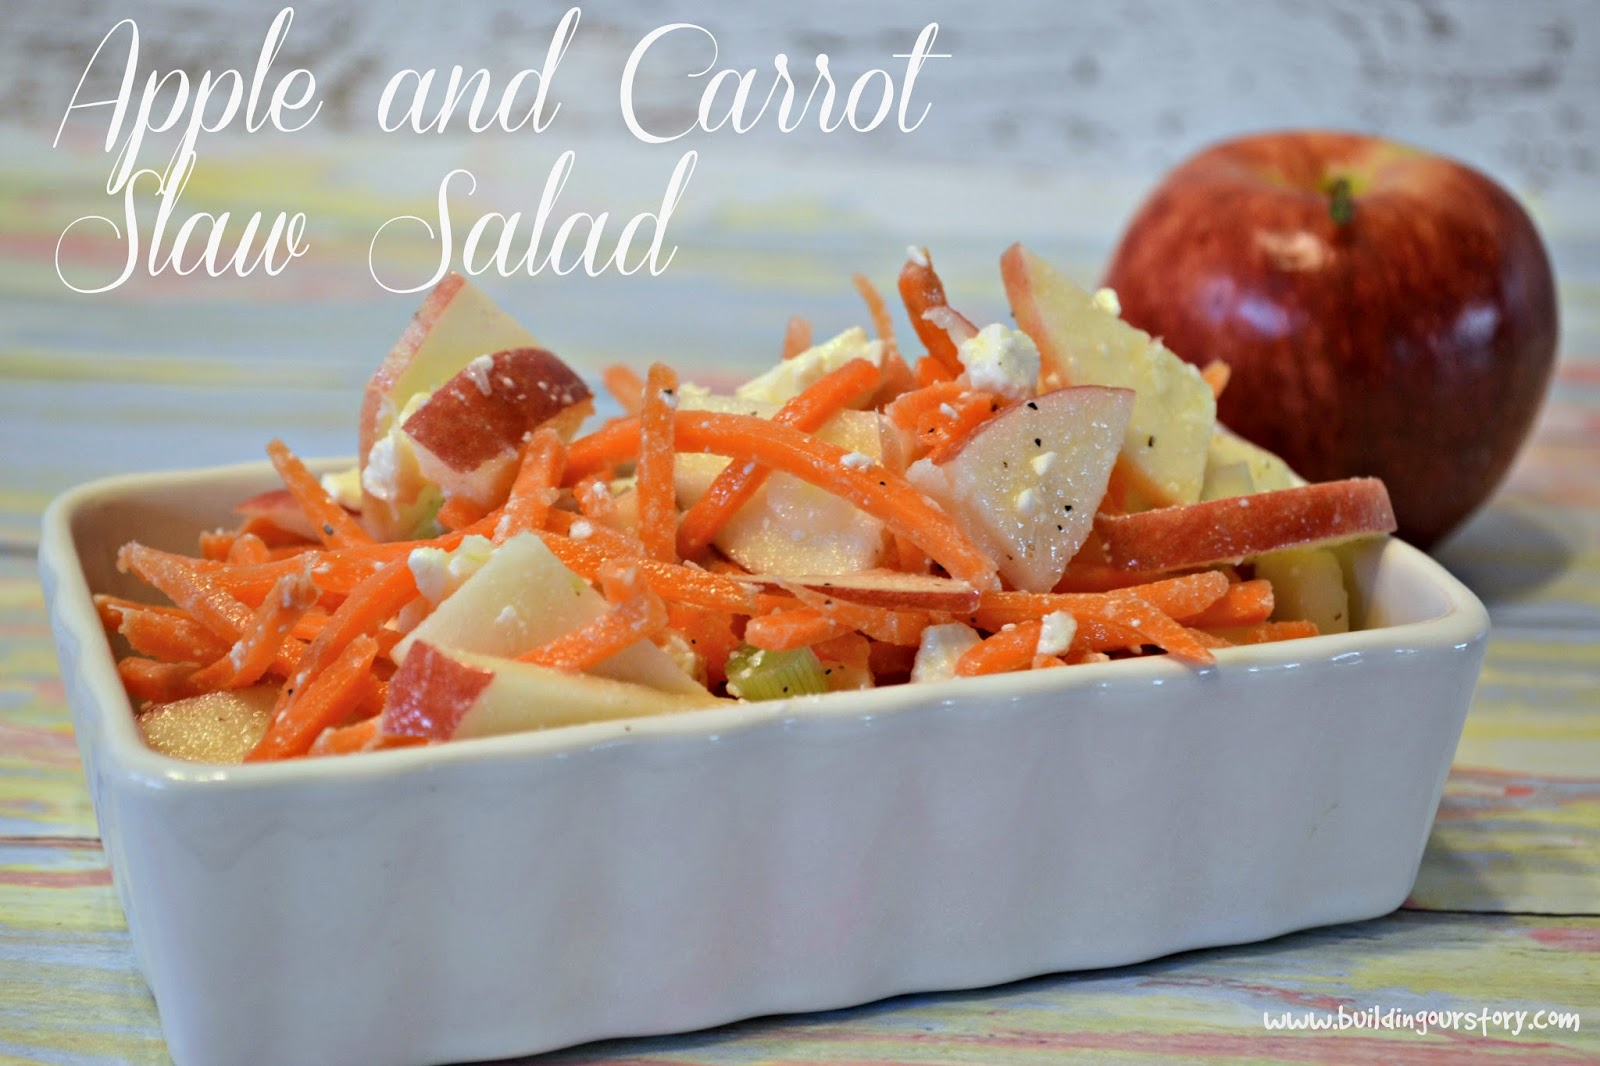 Apple and Carrot Slaw Salad Weight Watchers #Recipe